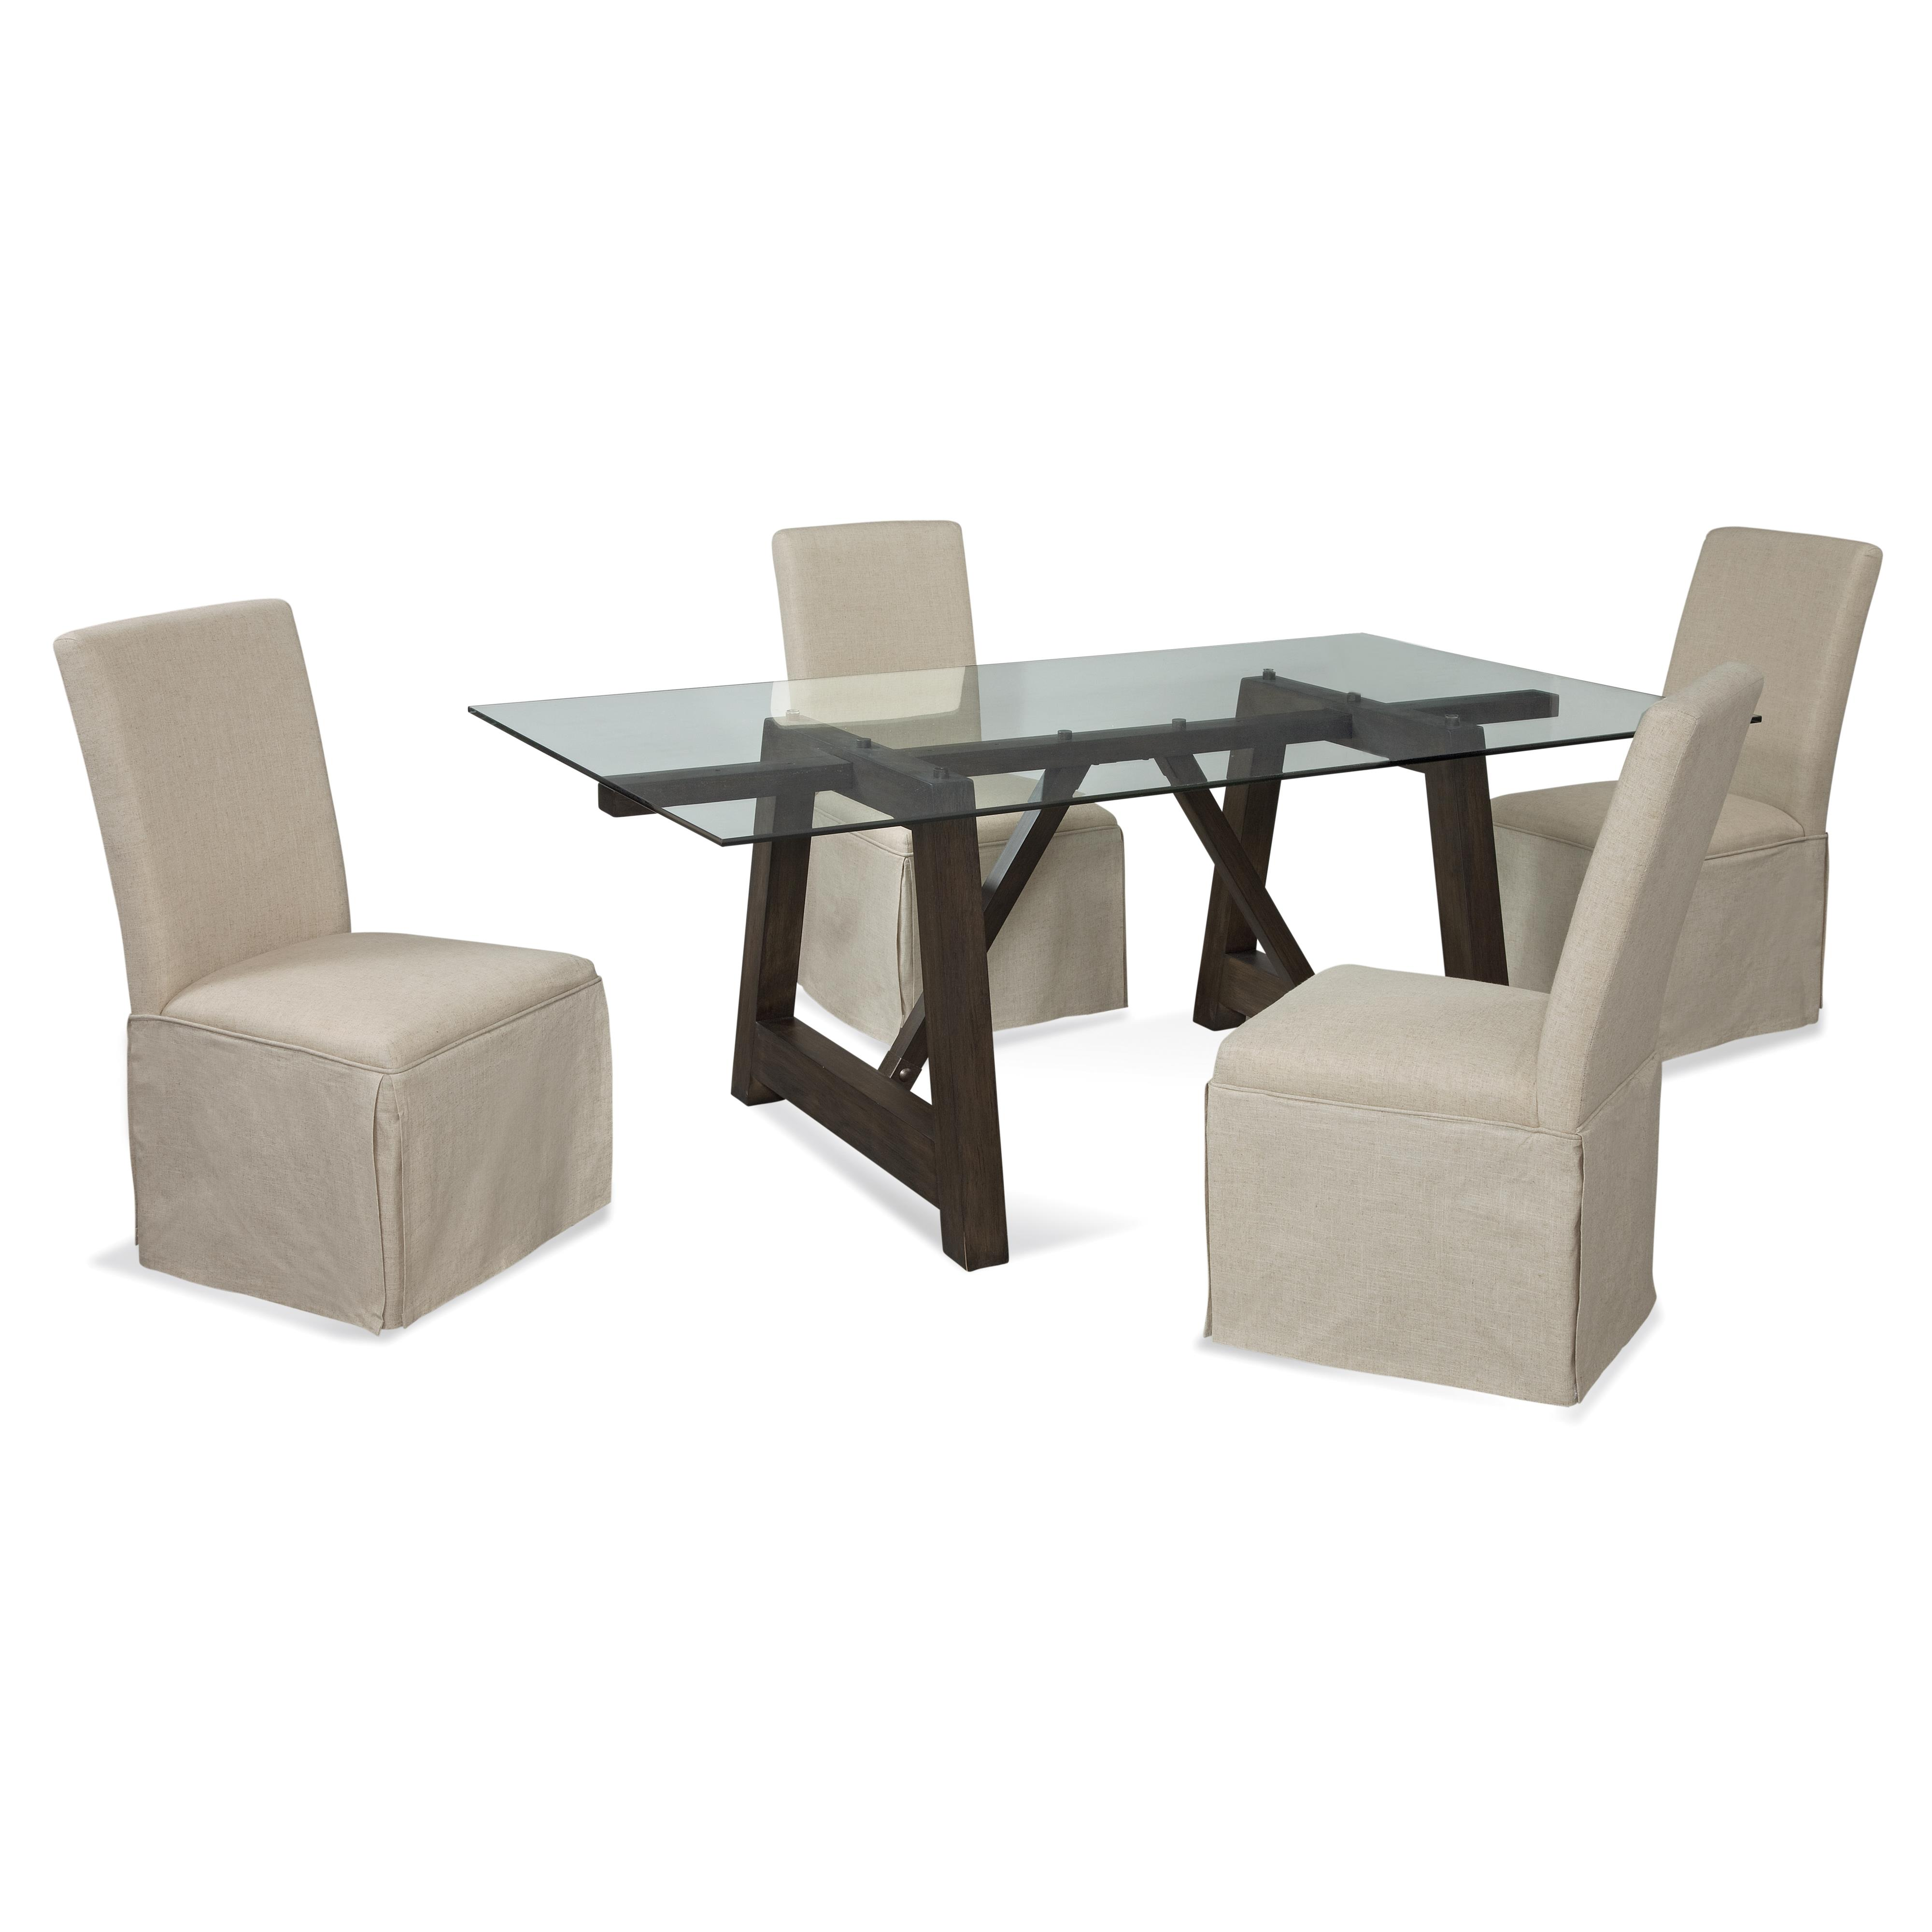 Belgian Luxe Ellsworth Casual Dining Set by Bassett Mirror at Alison Craig Home Furnishings